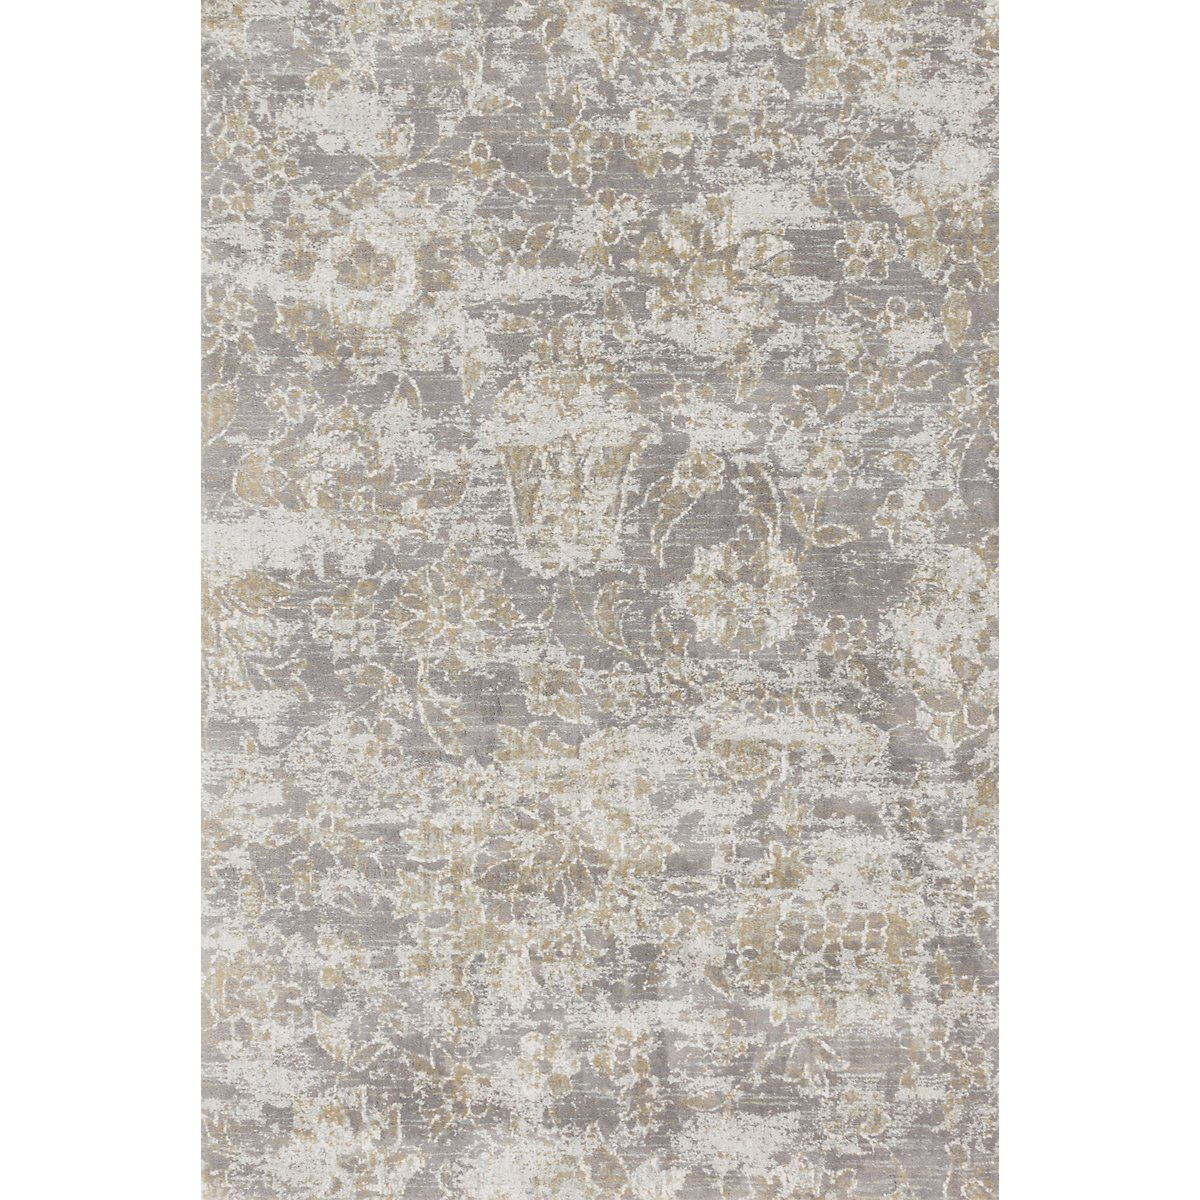 Torrance Light Beige 5X8 Area Rug